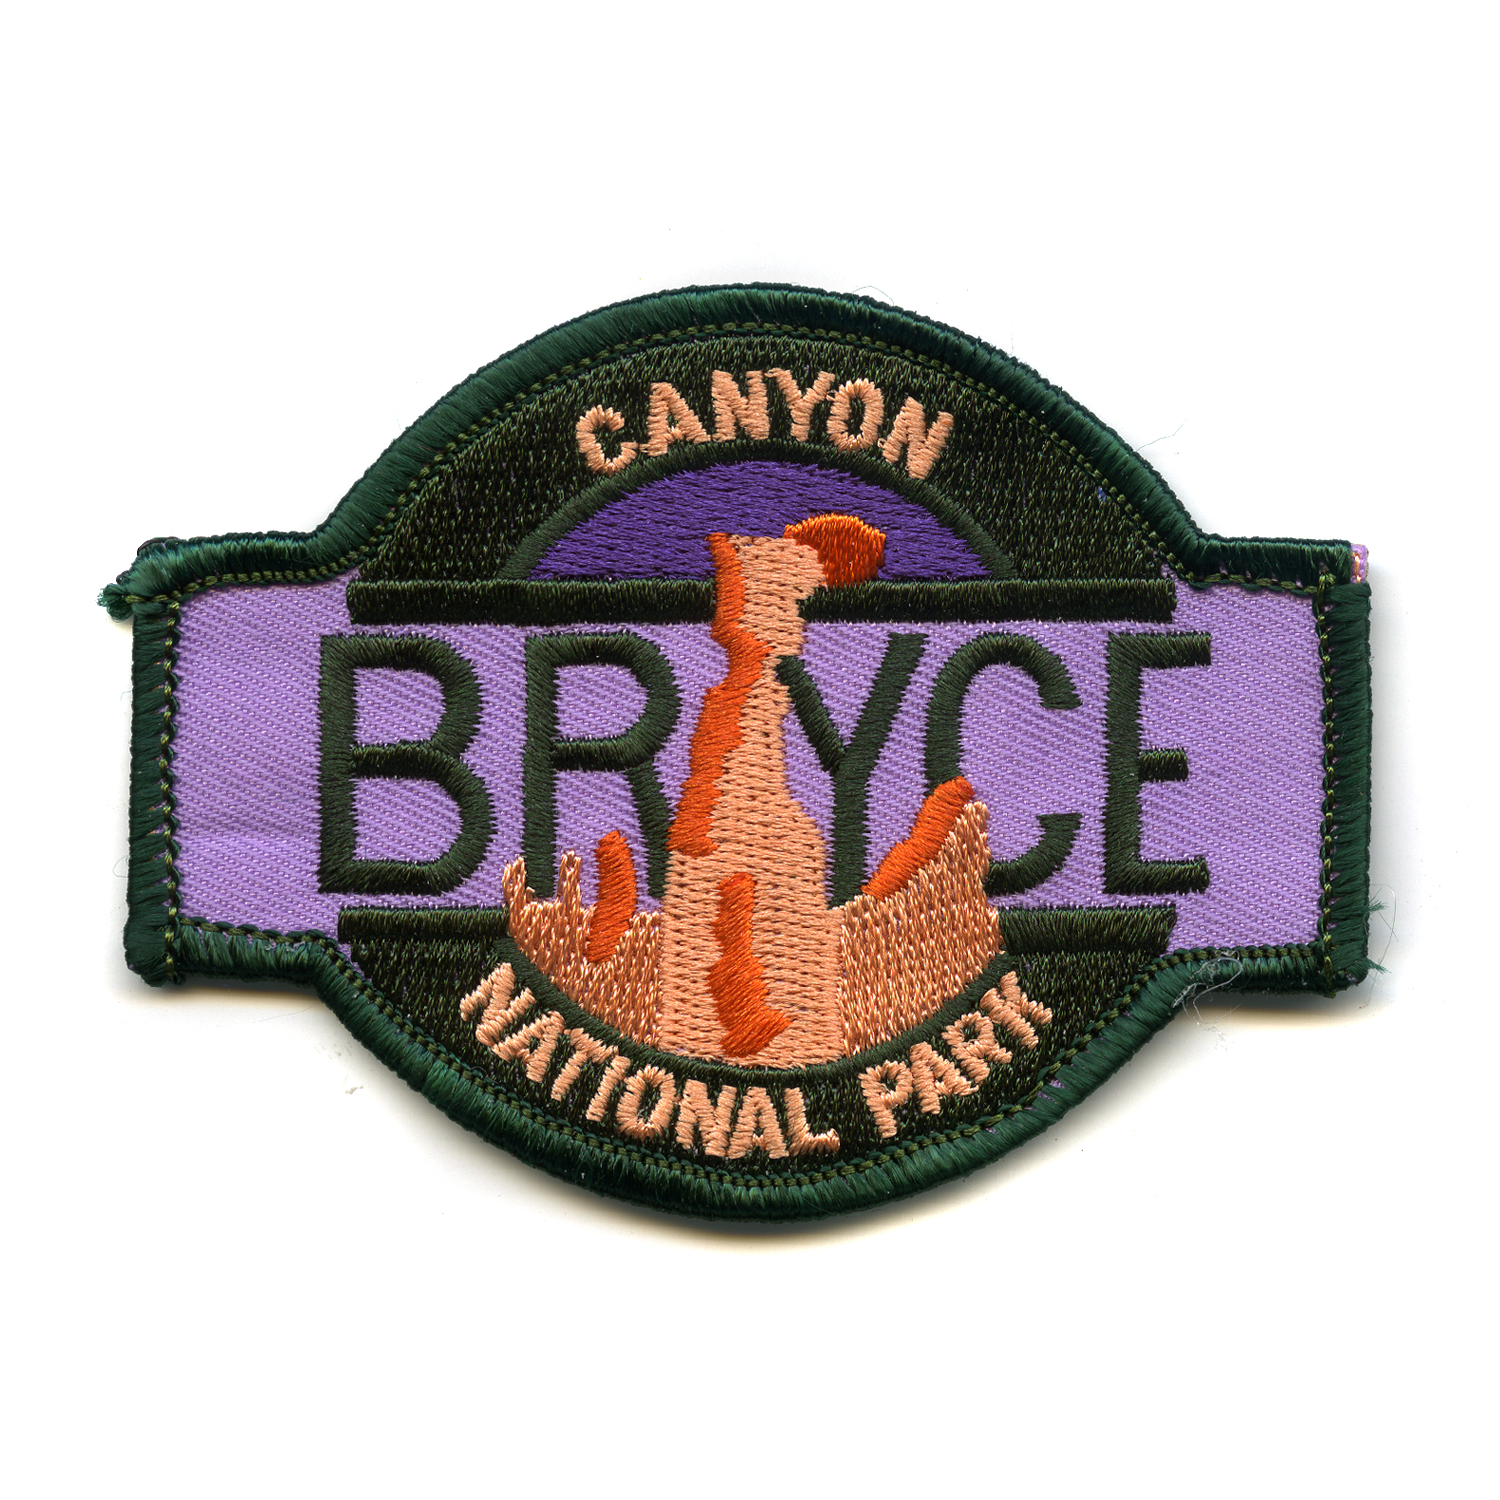 nps_patch_project_bryce_canyon_national_park_patch_1.jpg